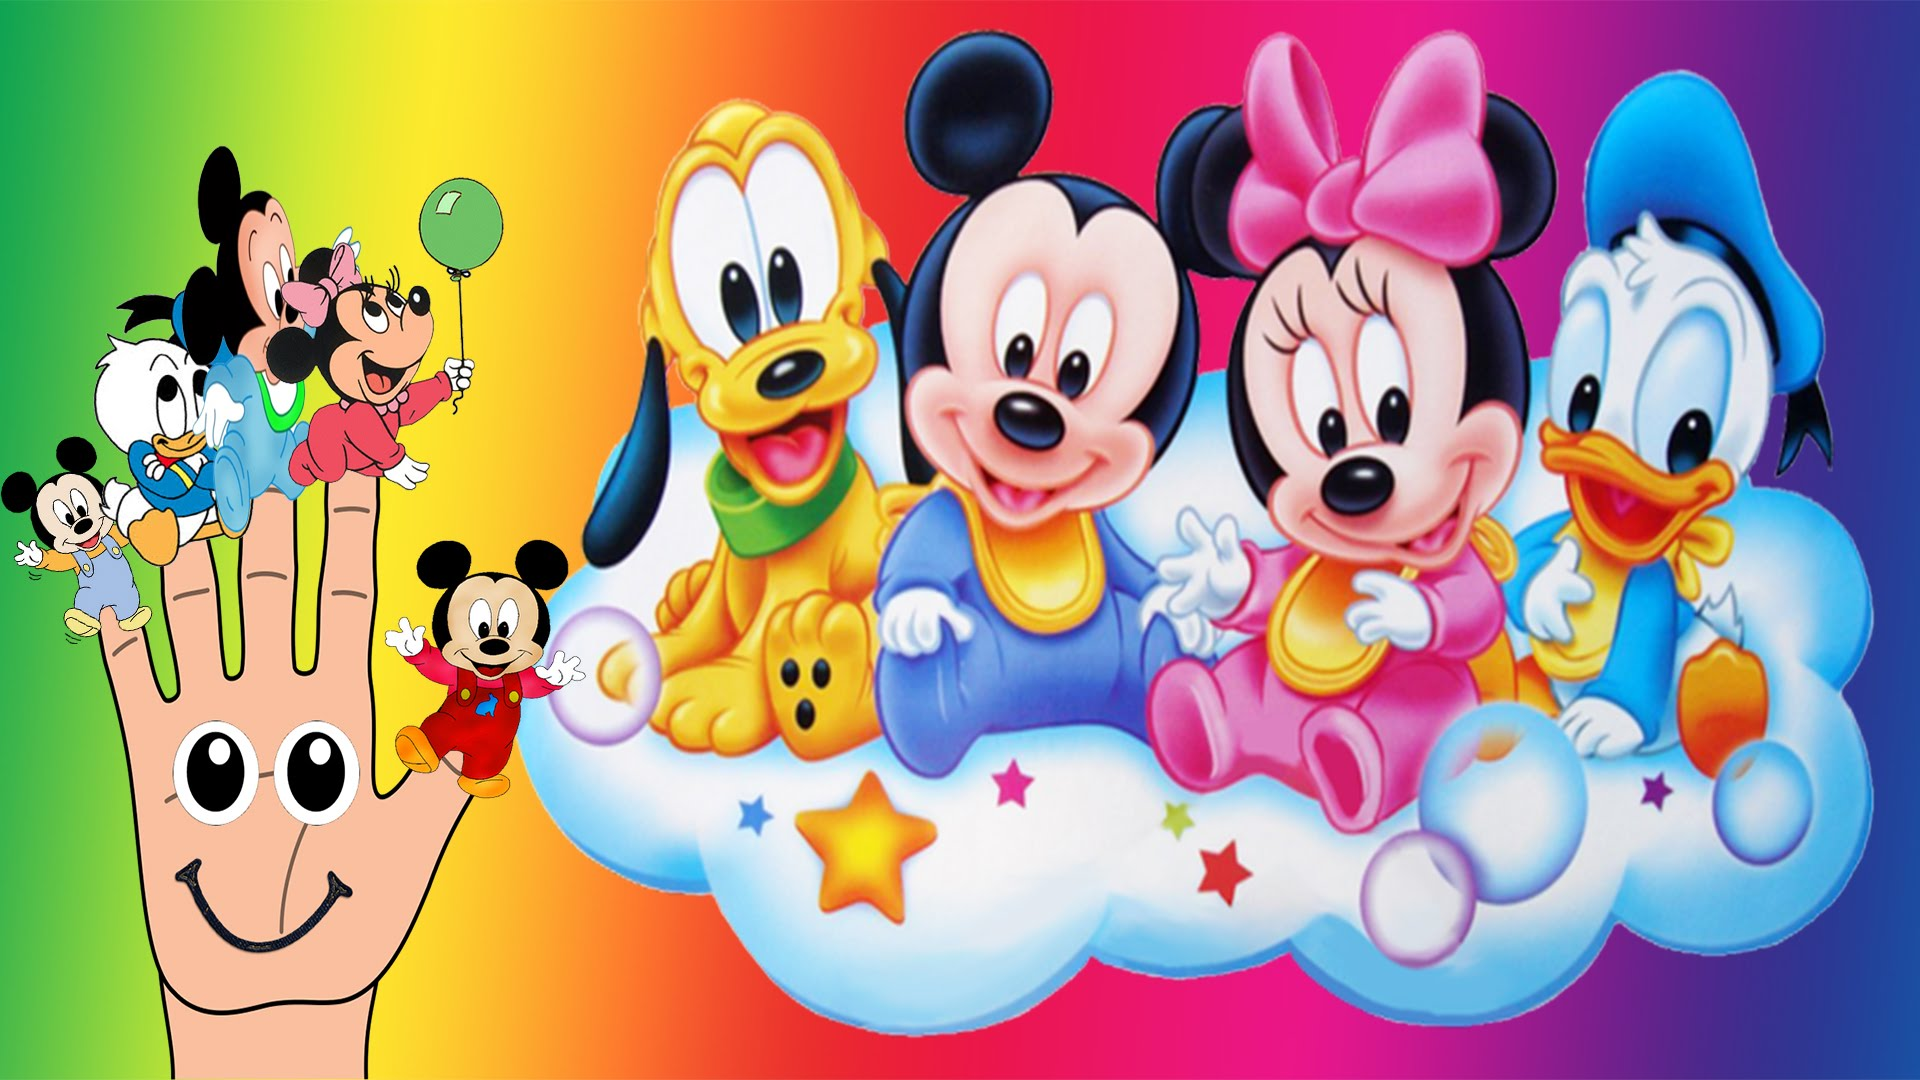 Hd Cars Wallpaper Iphone Adorable Baby Mickey Mouse Pluto Minnie Donald Duck